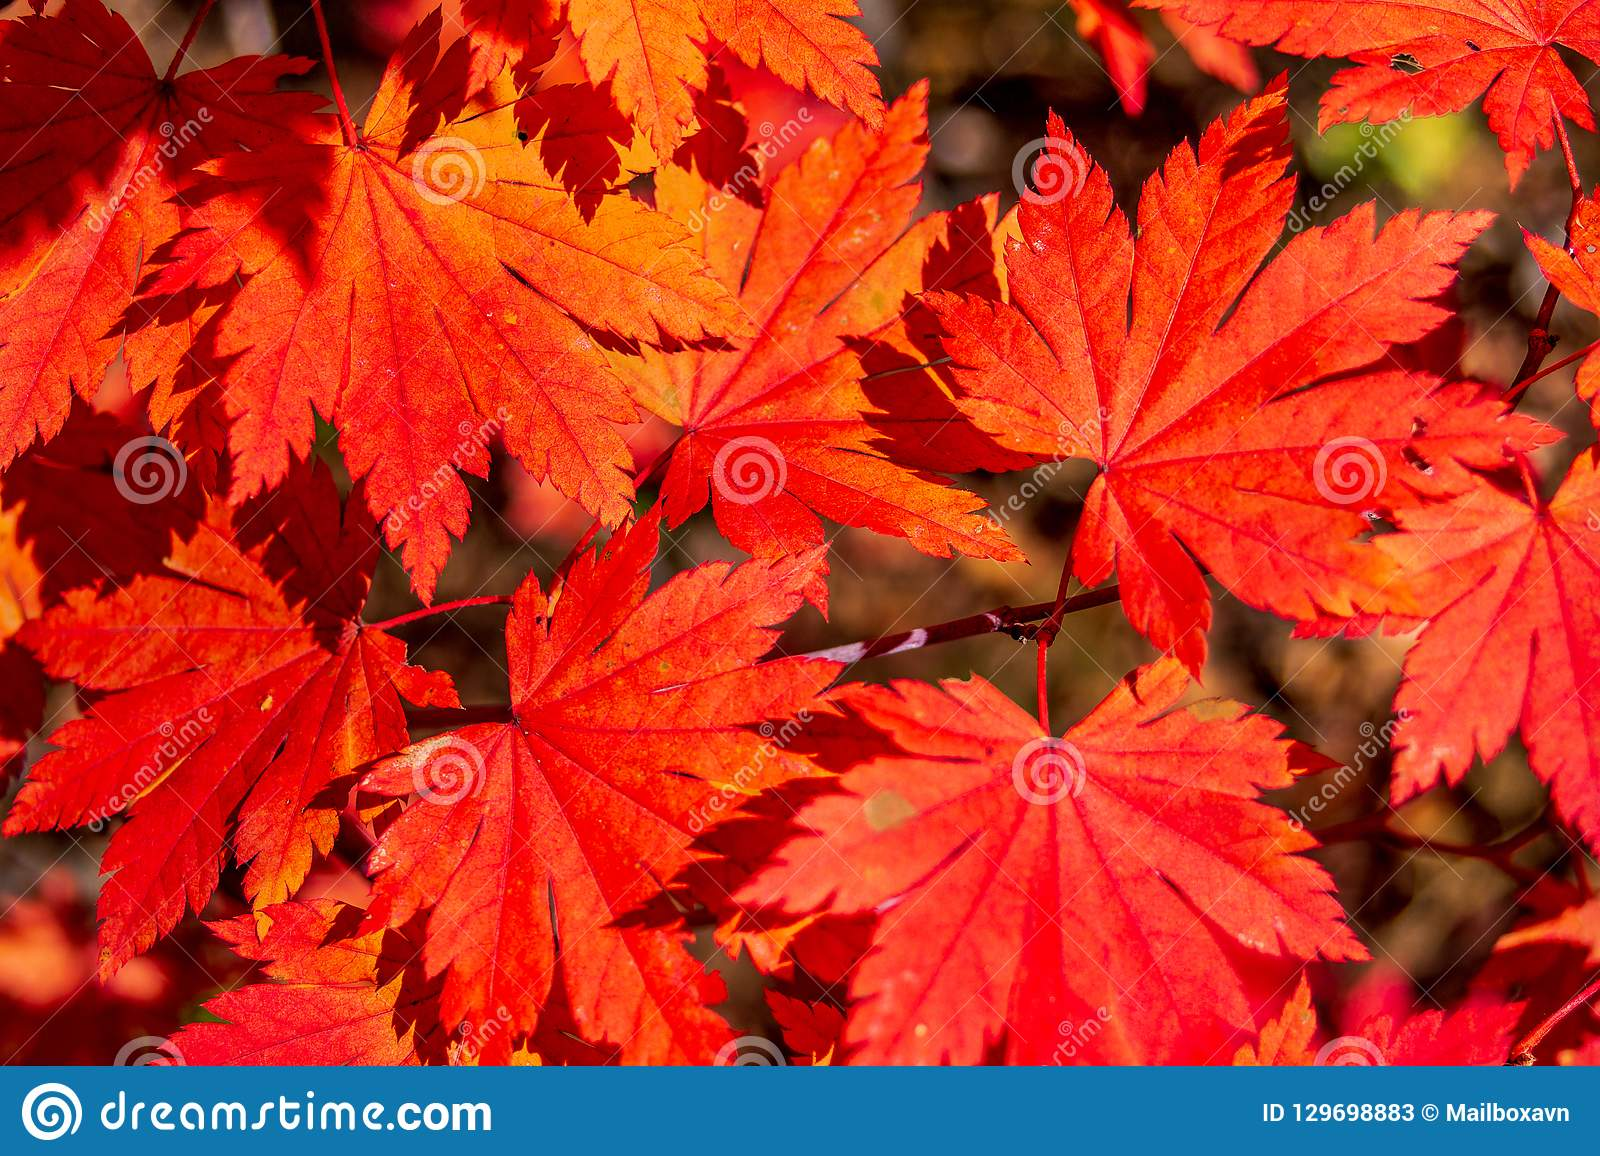 of yellow and red autumn leaves